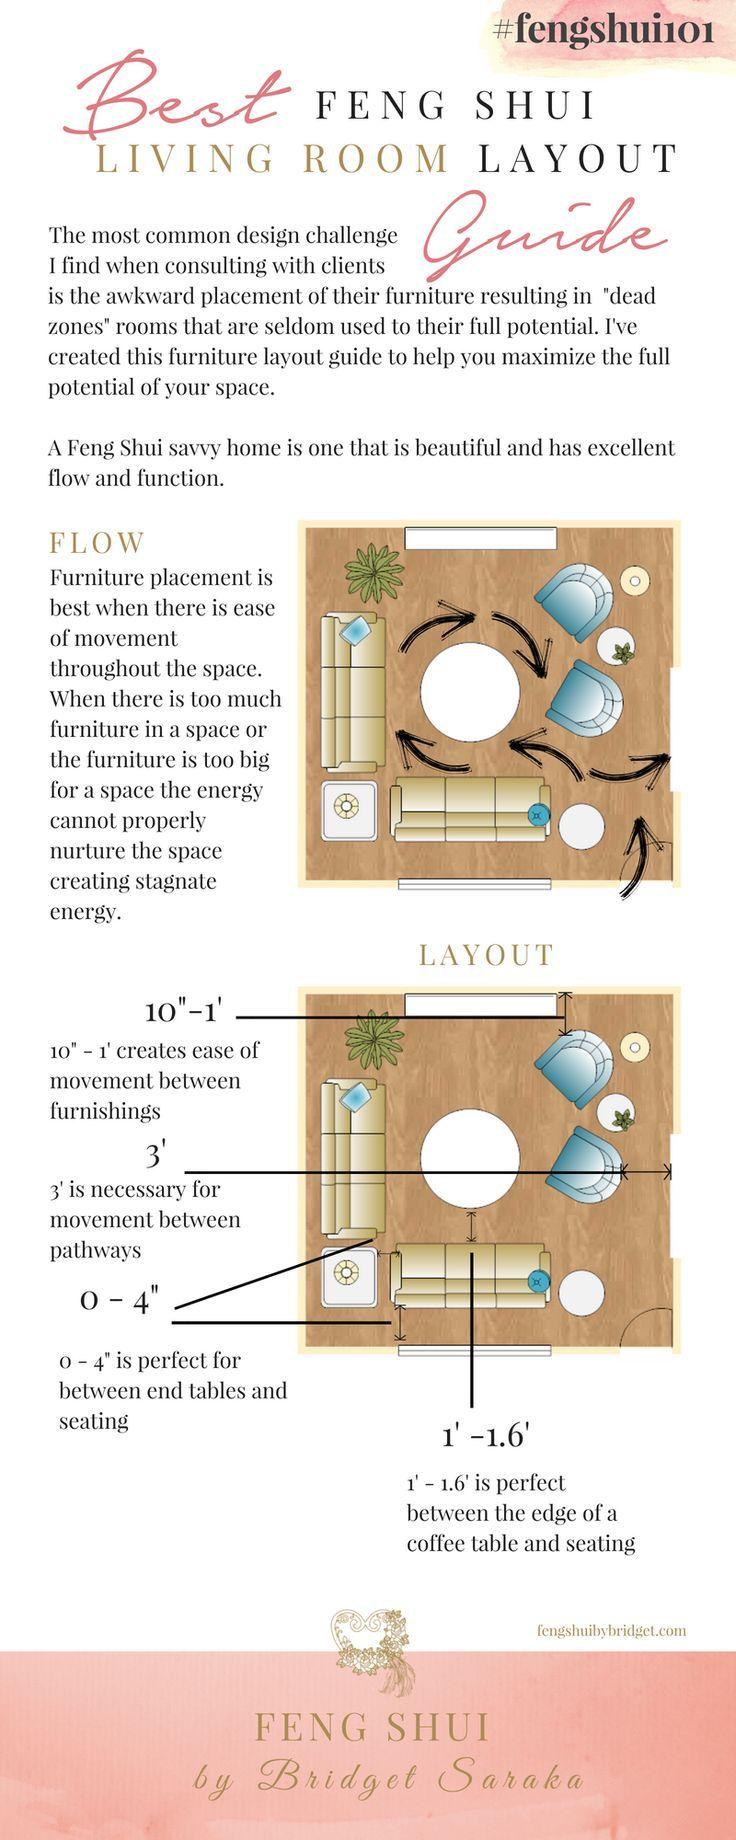 The Best Feng Shui Living Room Layout Guide Fengshui101 The Best